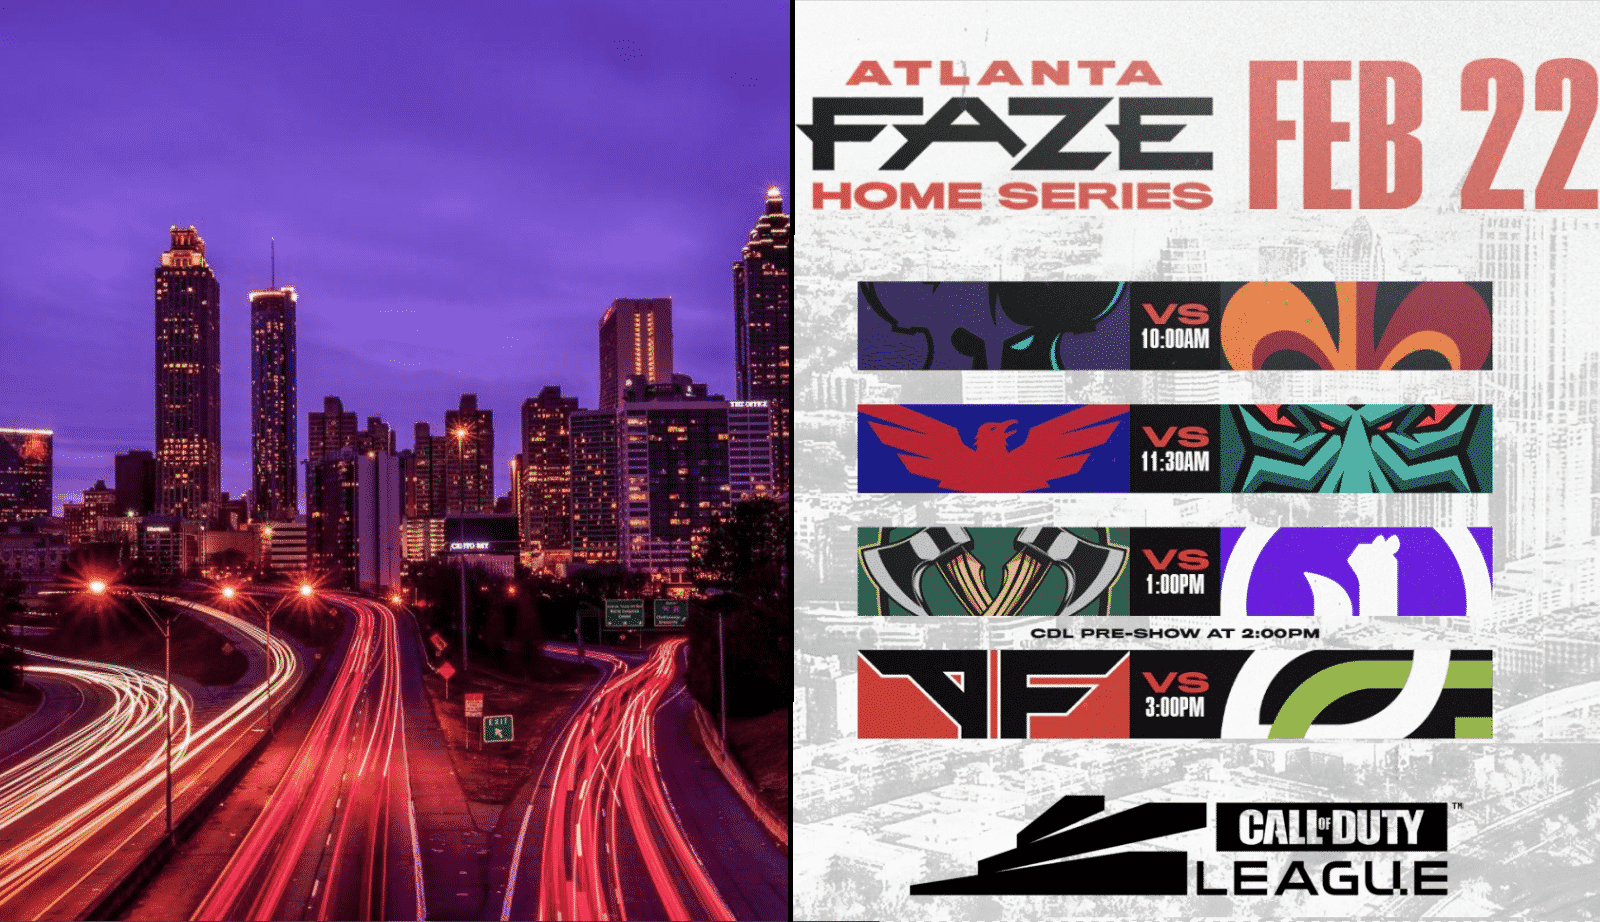 CDL Atlanta FaZe Home Series 2020: Schedule, Teams and Updates - Game Life